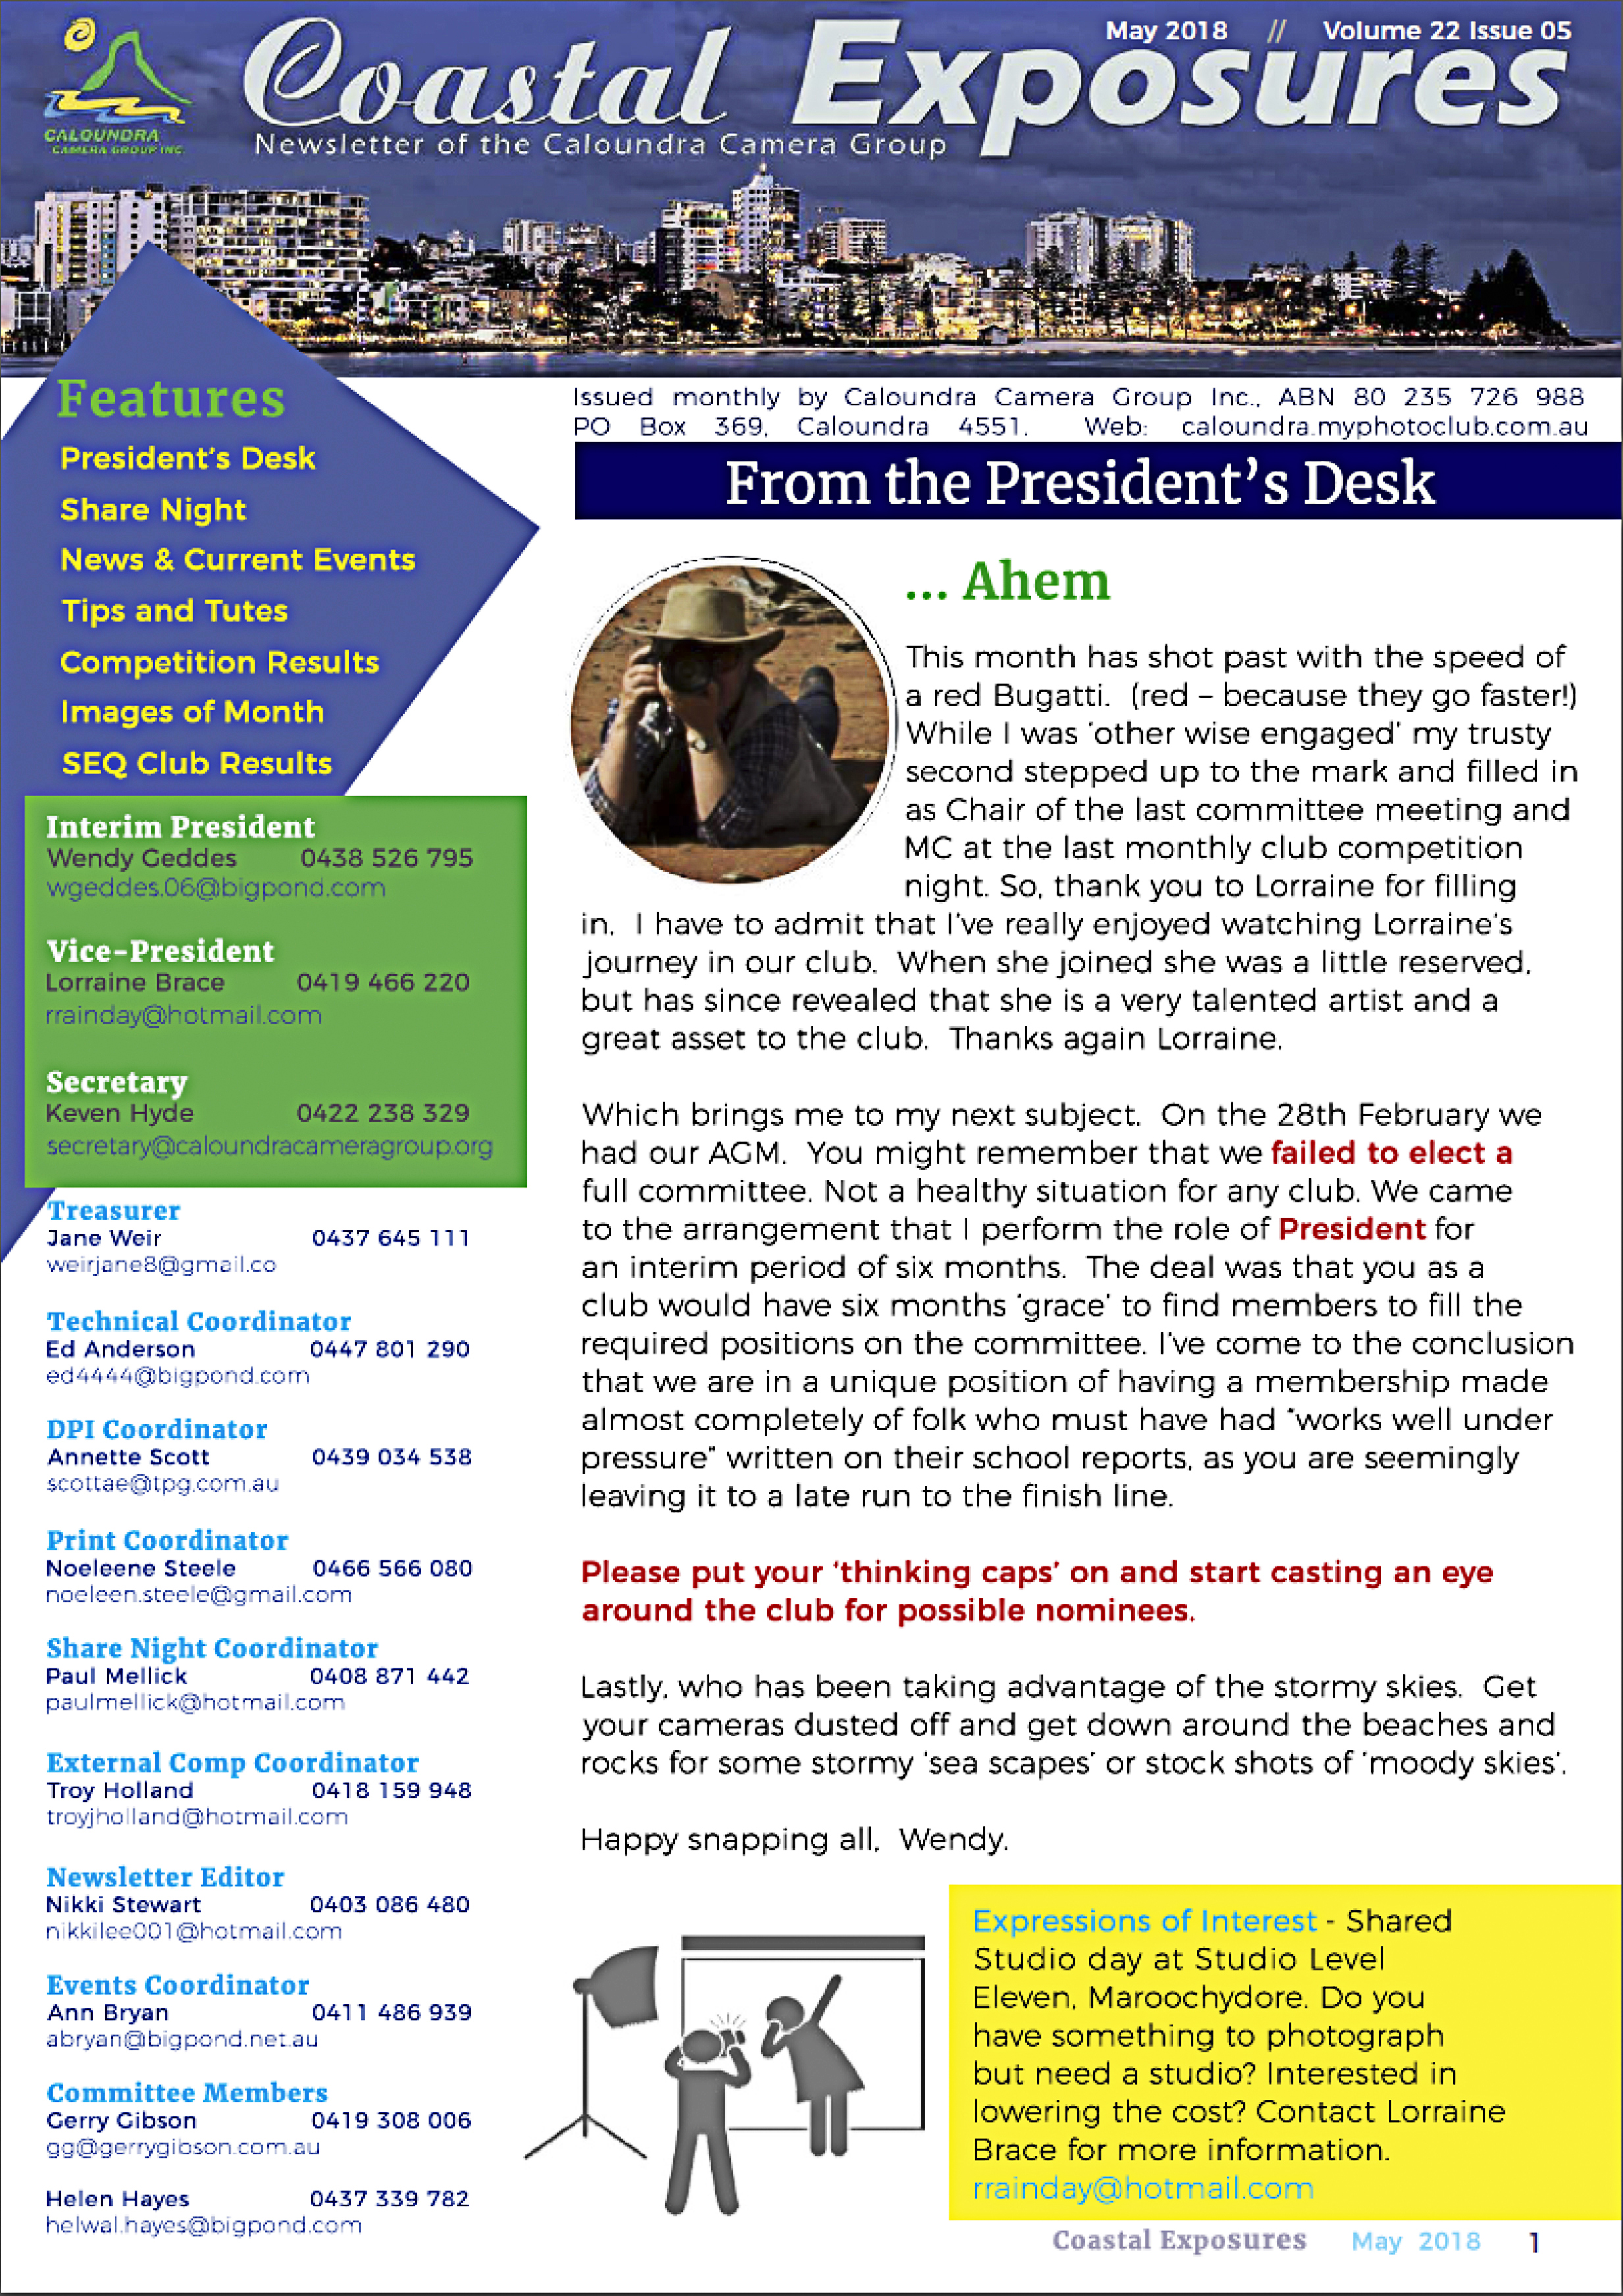 May_2018 Newsletter Cover Image